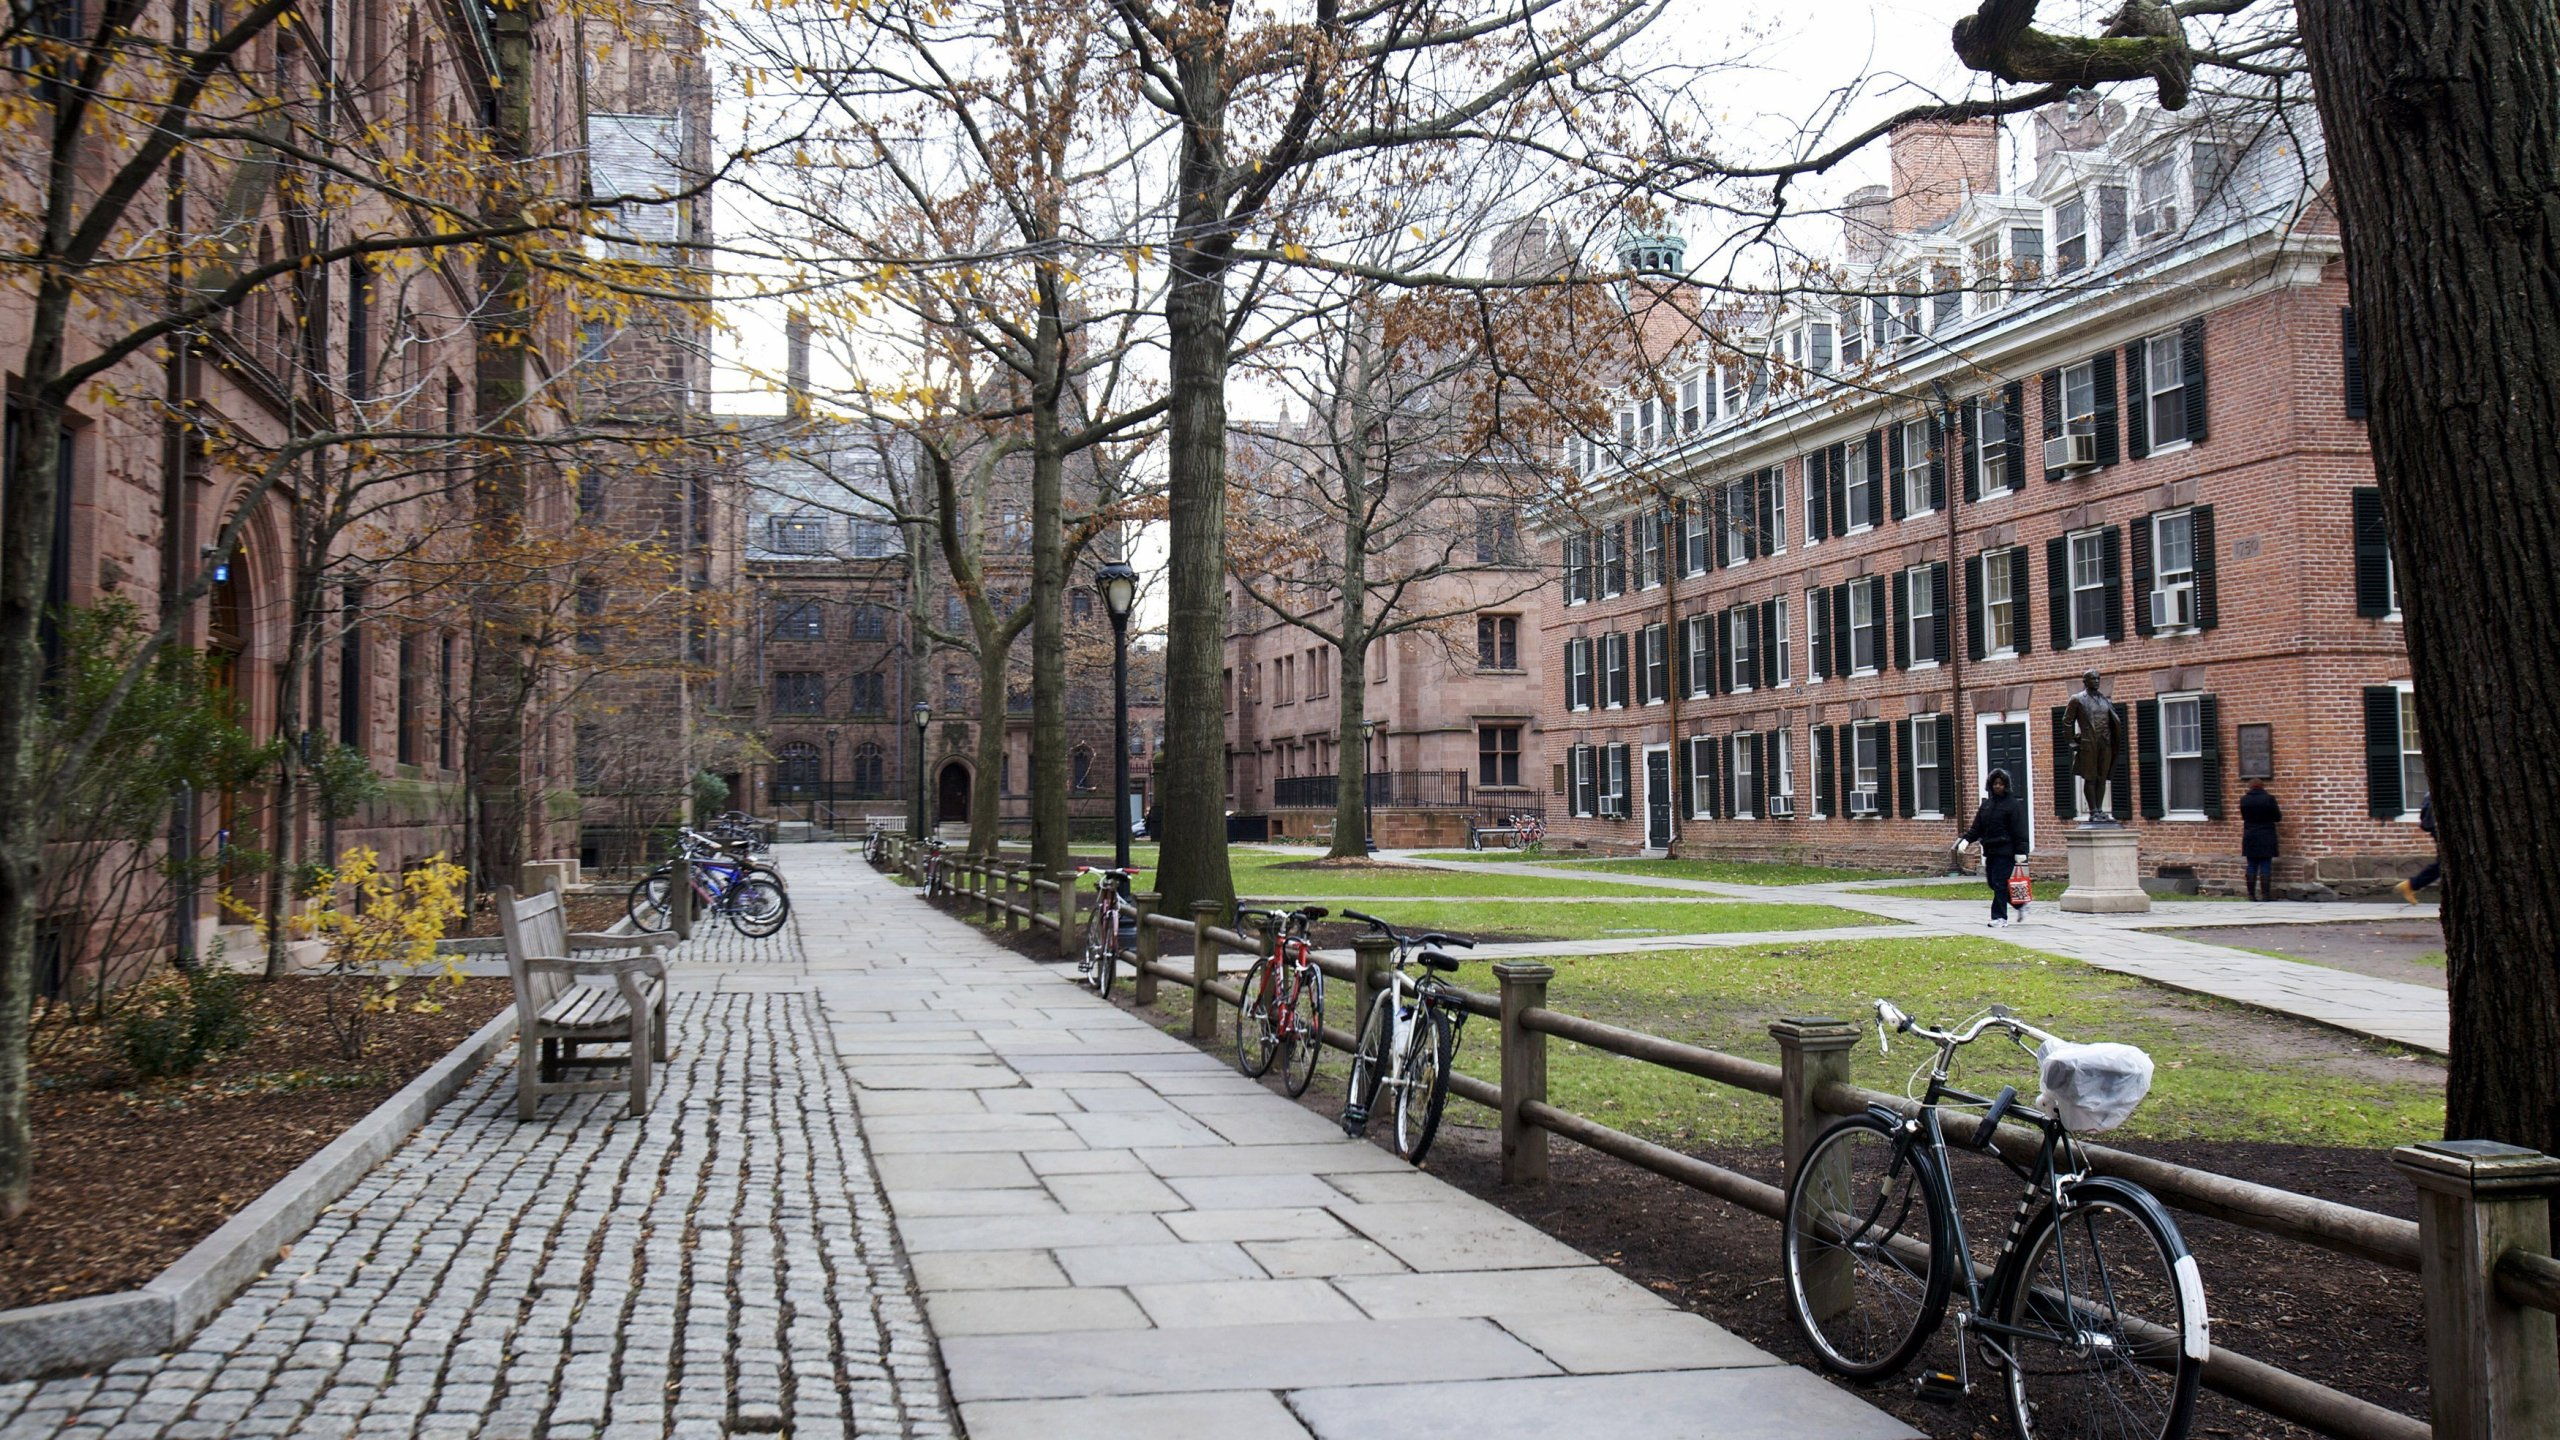 The Yale University campus is seen in an undated photo. (Credit: Michelle McLoughlin/Reuters via CNN)